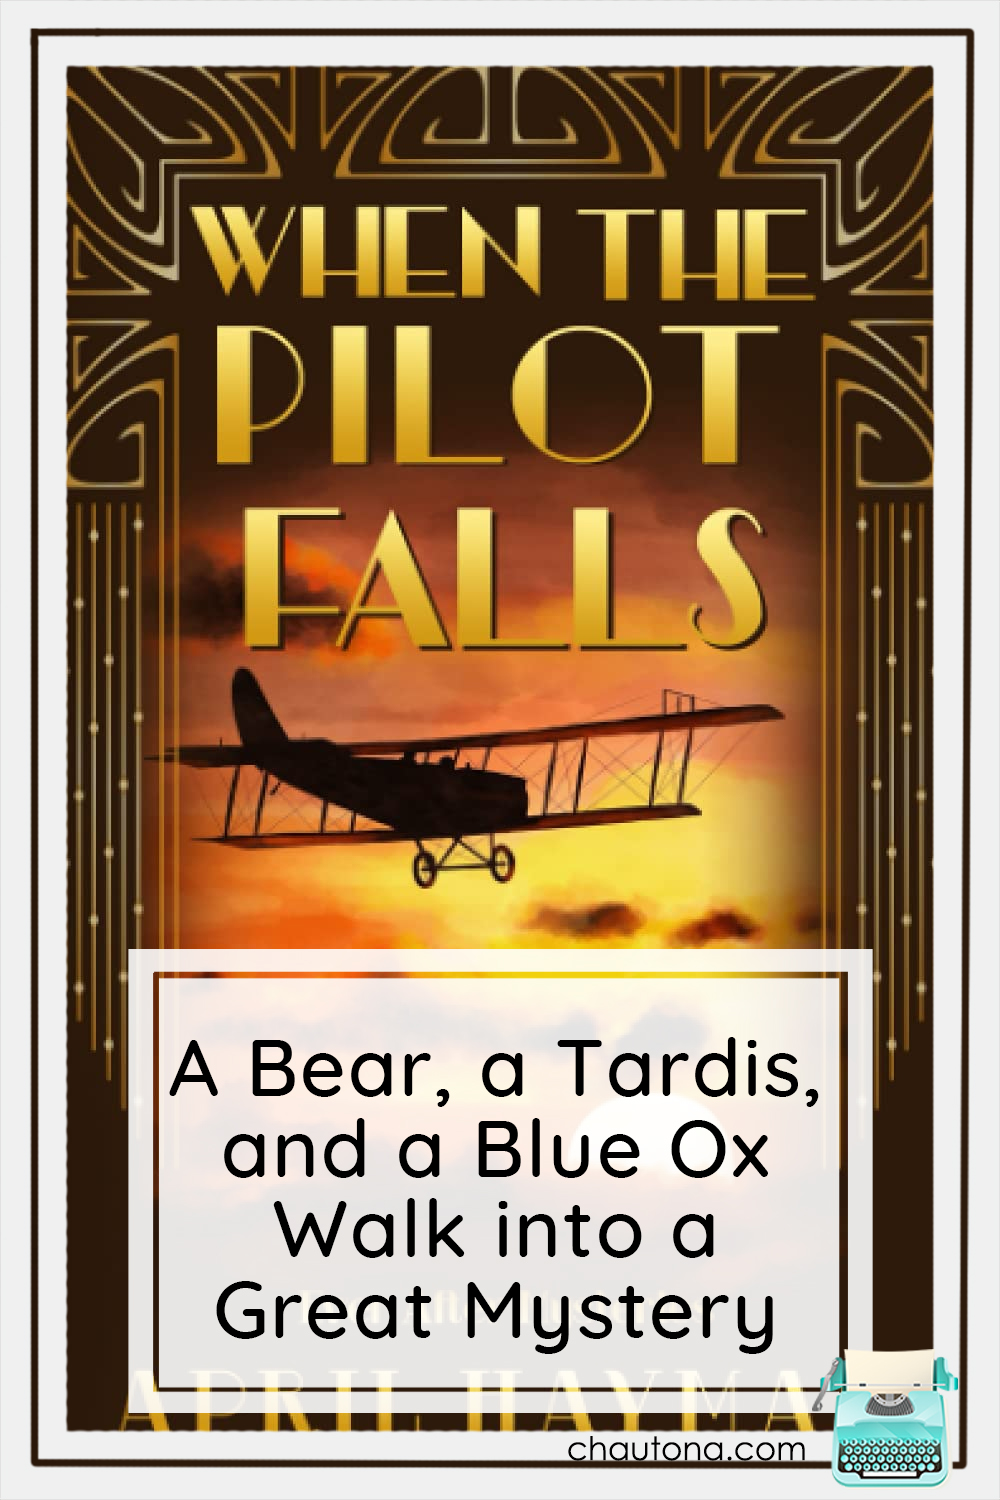 The next Ever After Mystery has released! When the Pilot Falls is a harrowing tale of stunt pilots in the infancy of such shenanigains! via @chautonahavig